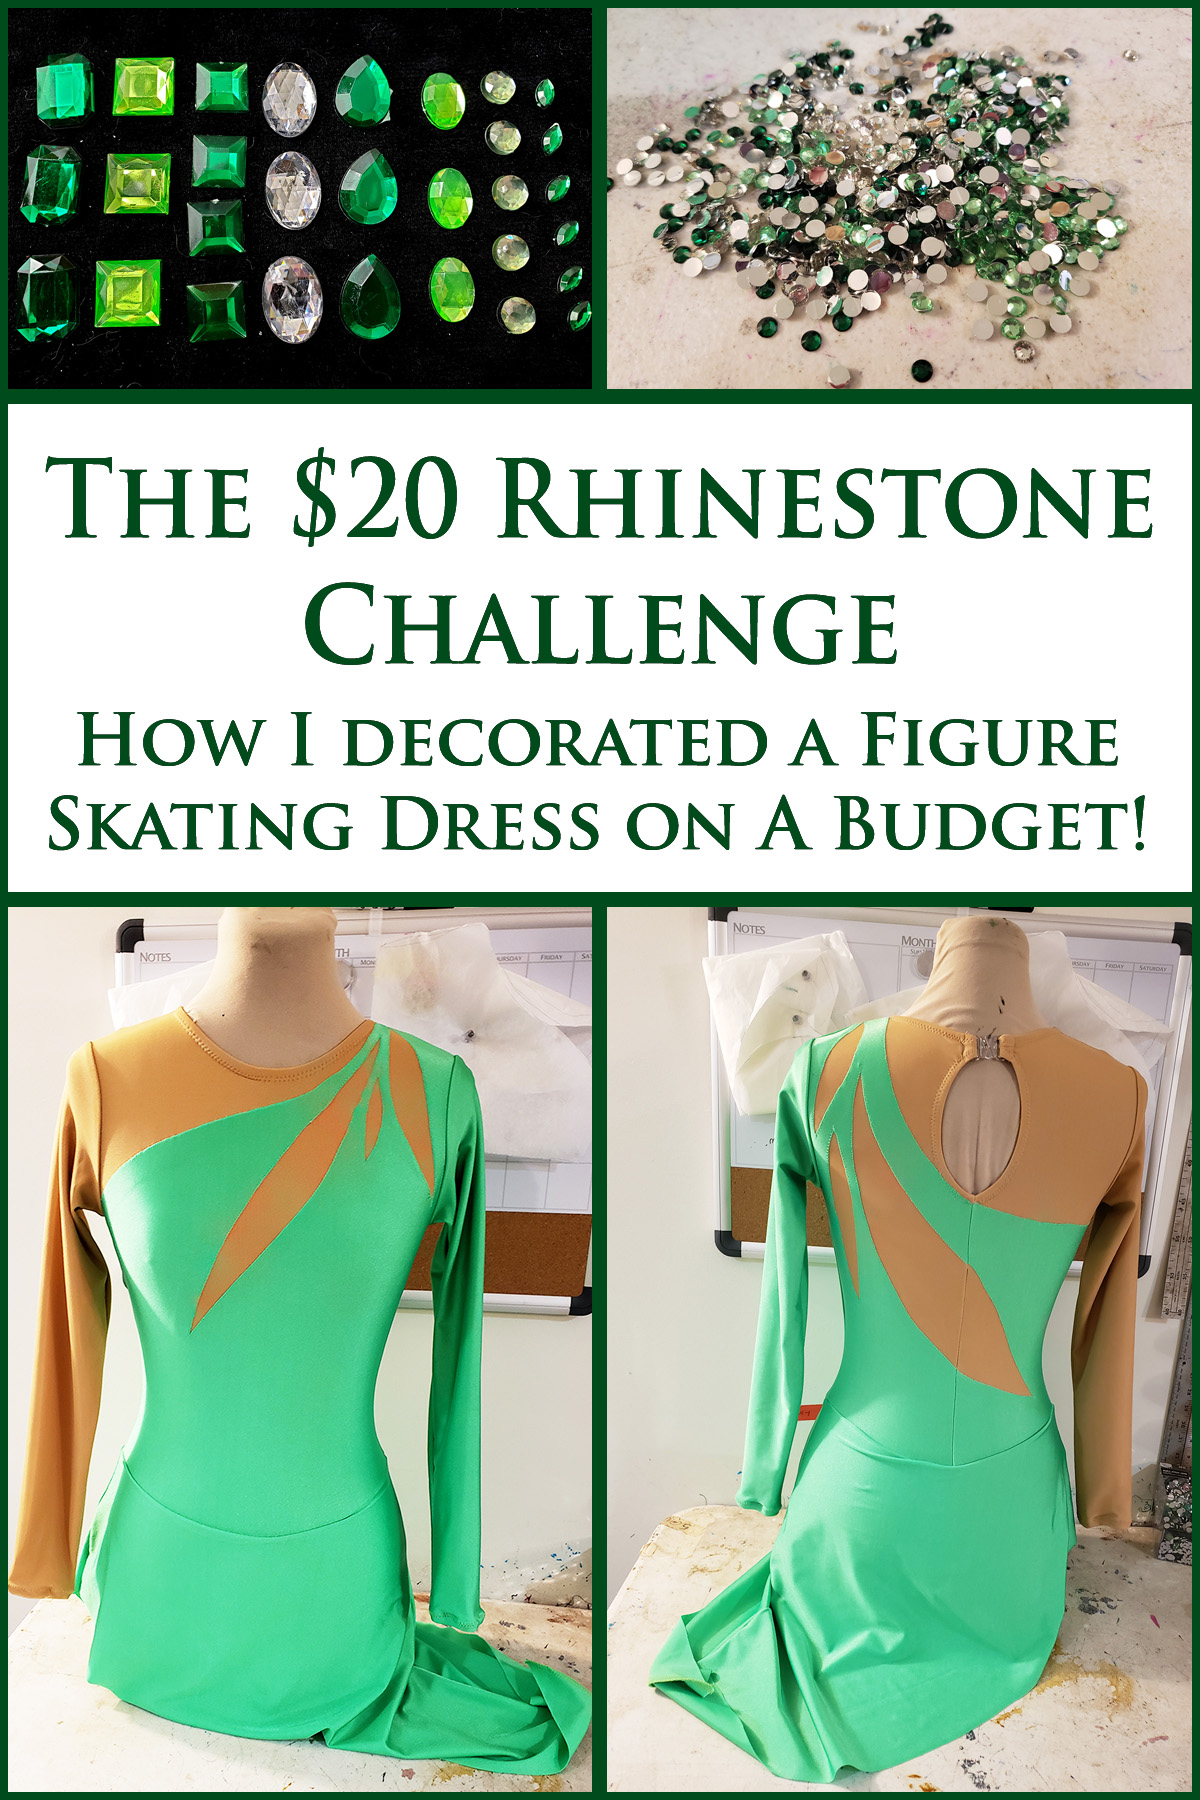 A compilation image showing front and back views of a green skating dress, along with green and clear crystals. Green Text says The $20 Rhinestone Challenge: How I Decorated a Figure Skating Dress on a Budget!